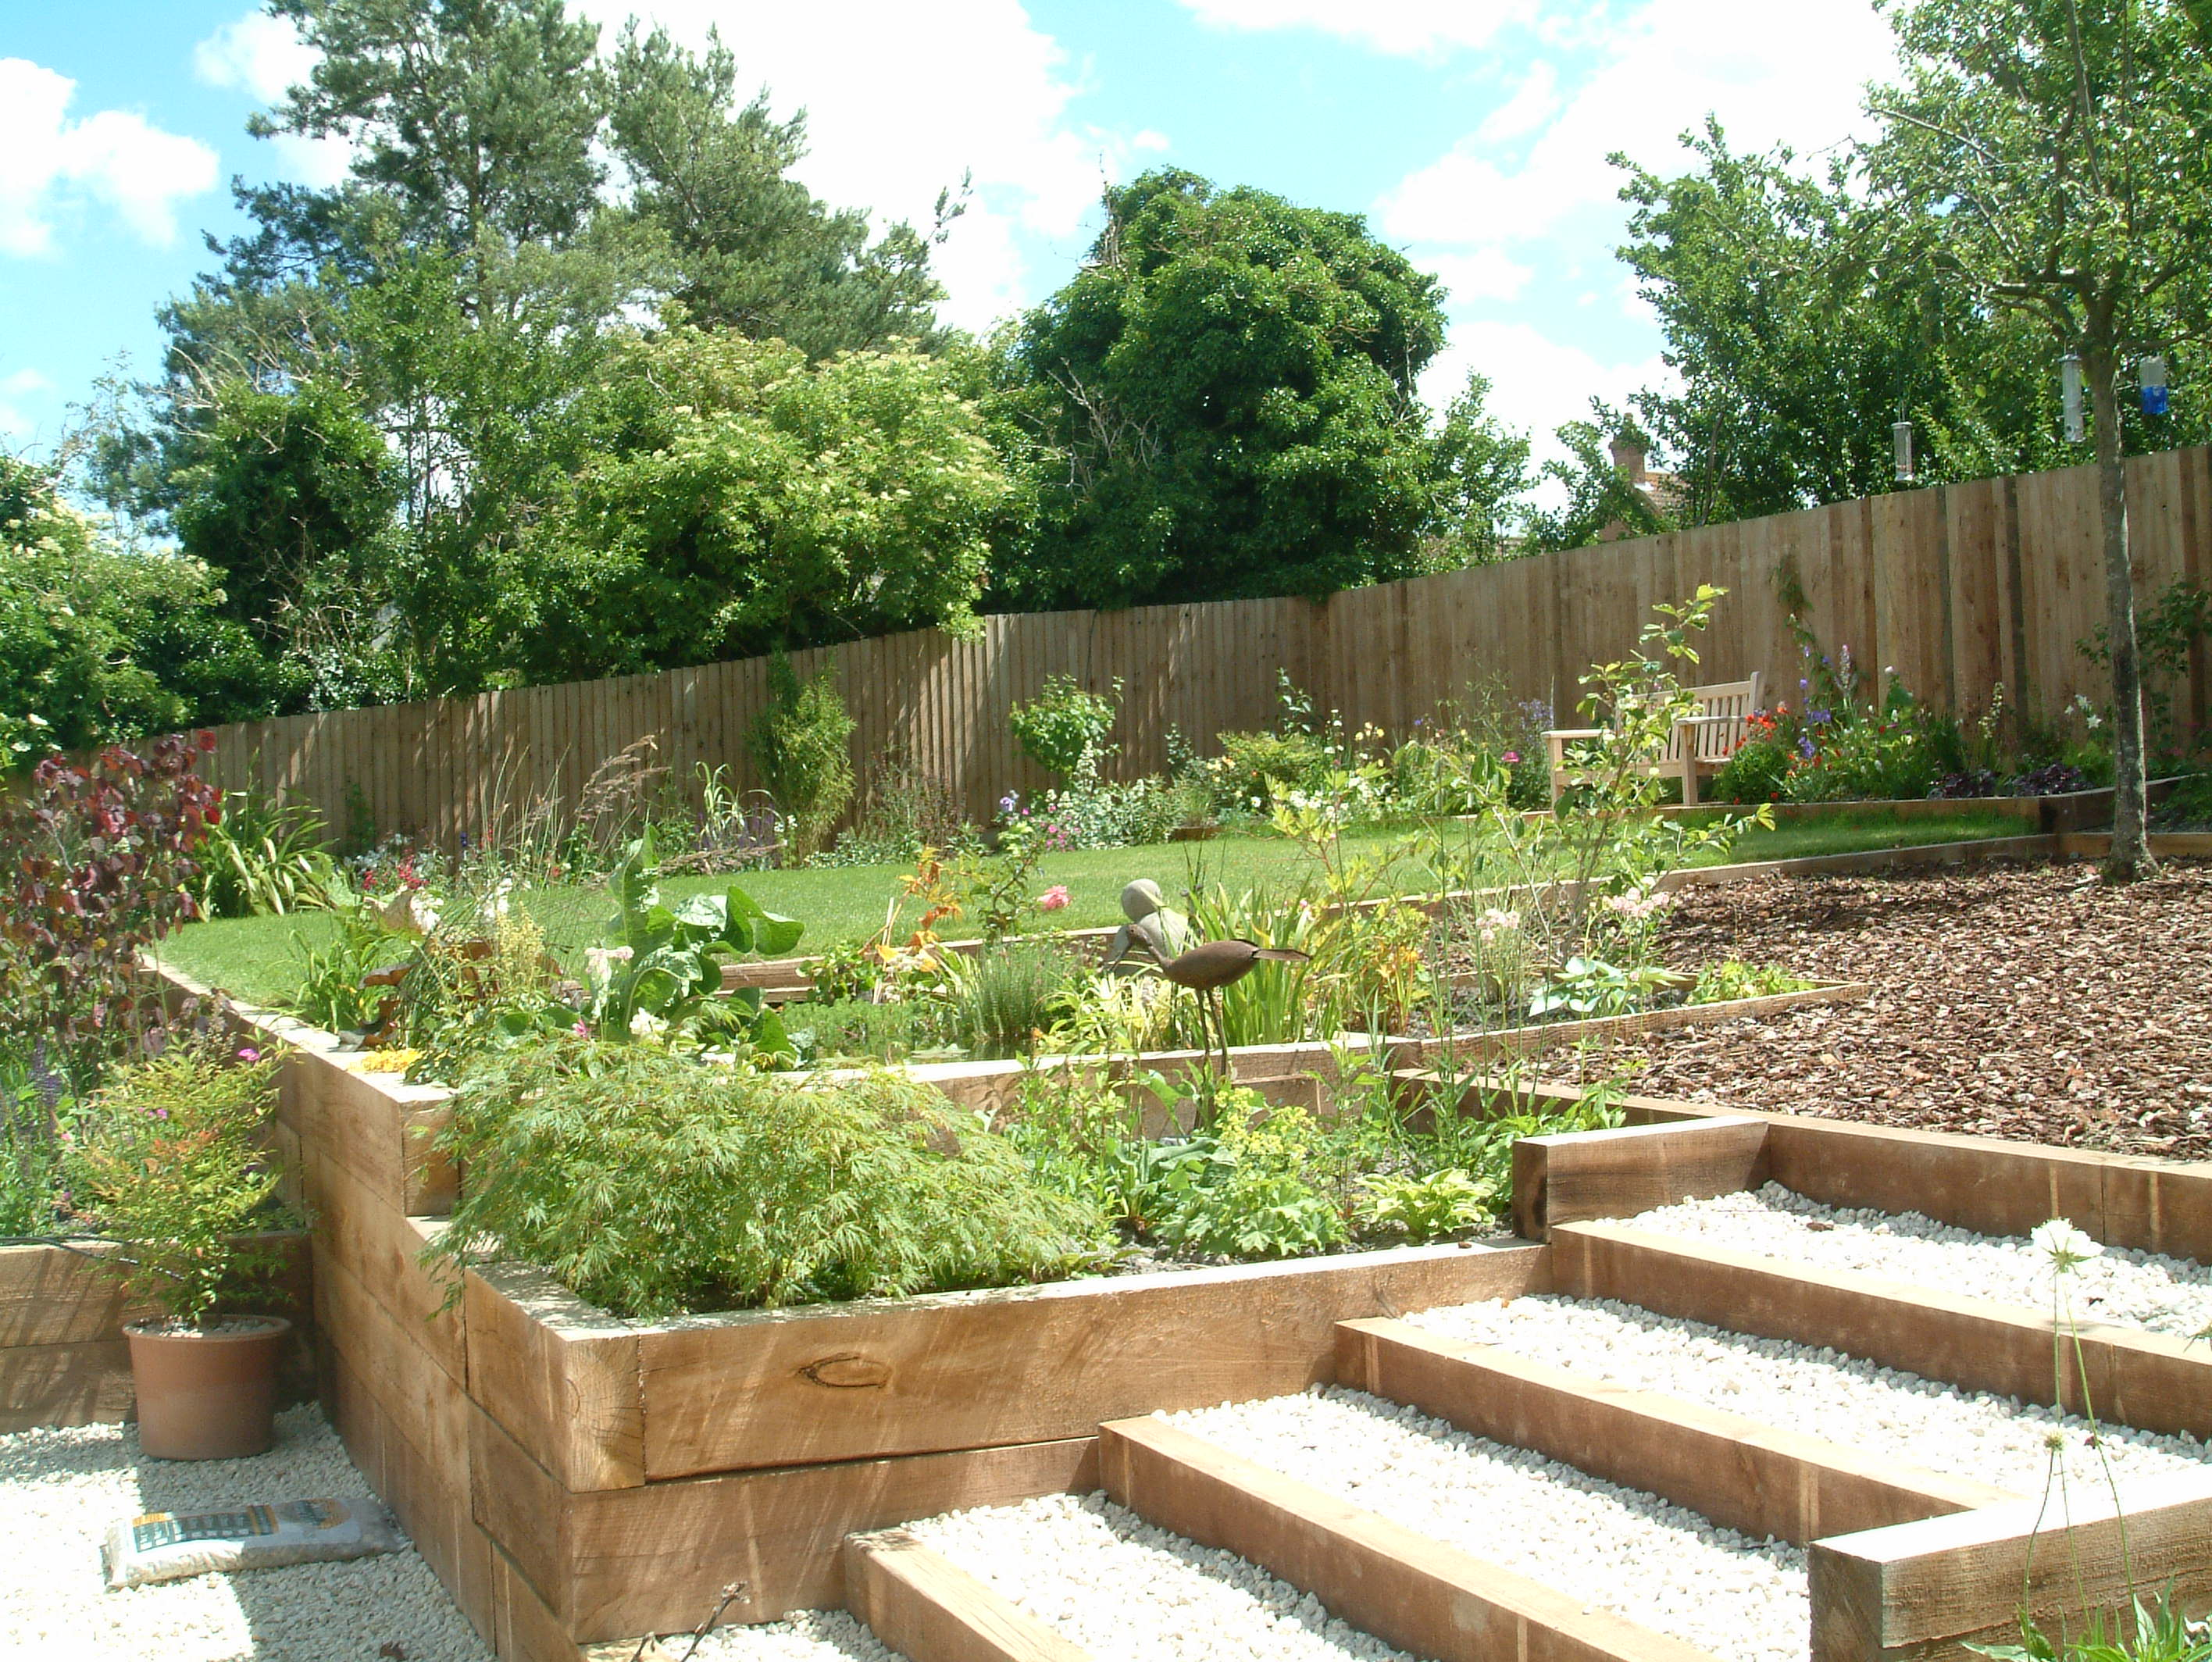 Garden Walls and Brickwork